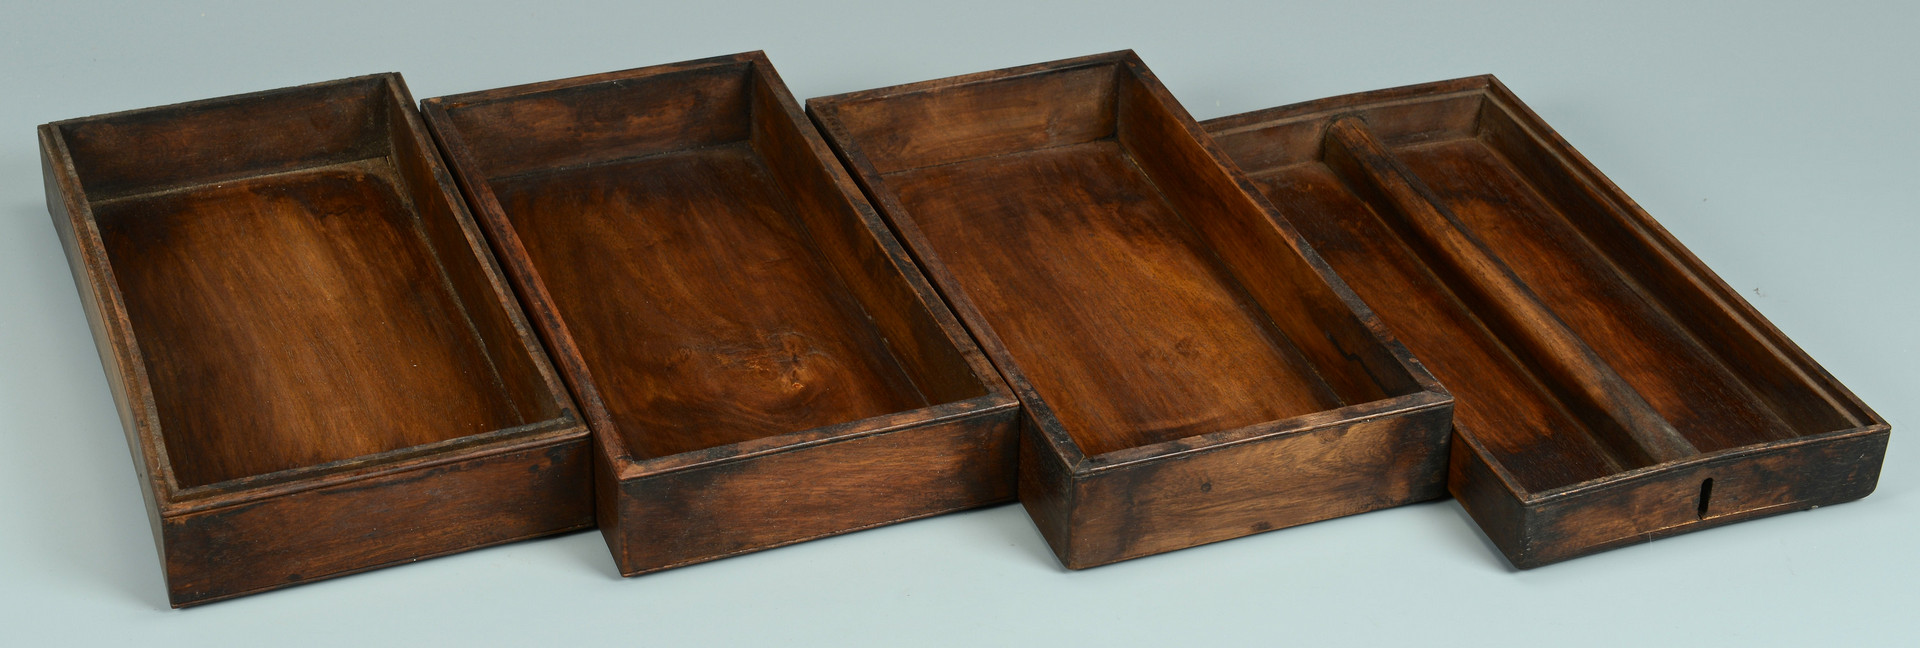 Lot 223: Chinese Hardwood Plant Stand & Lunchbox